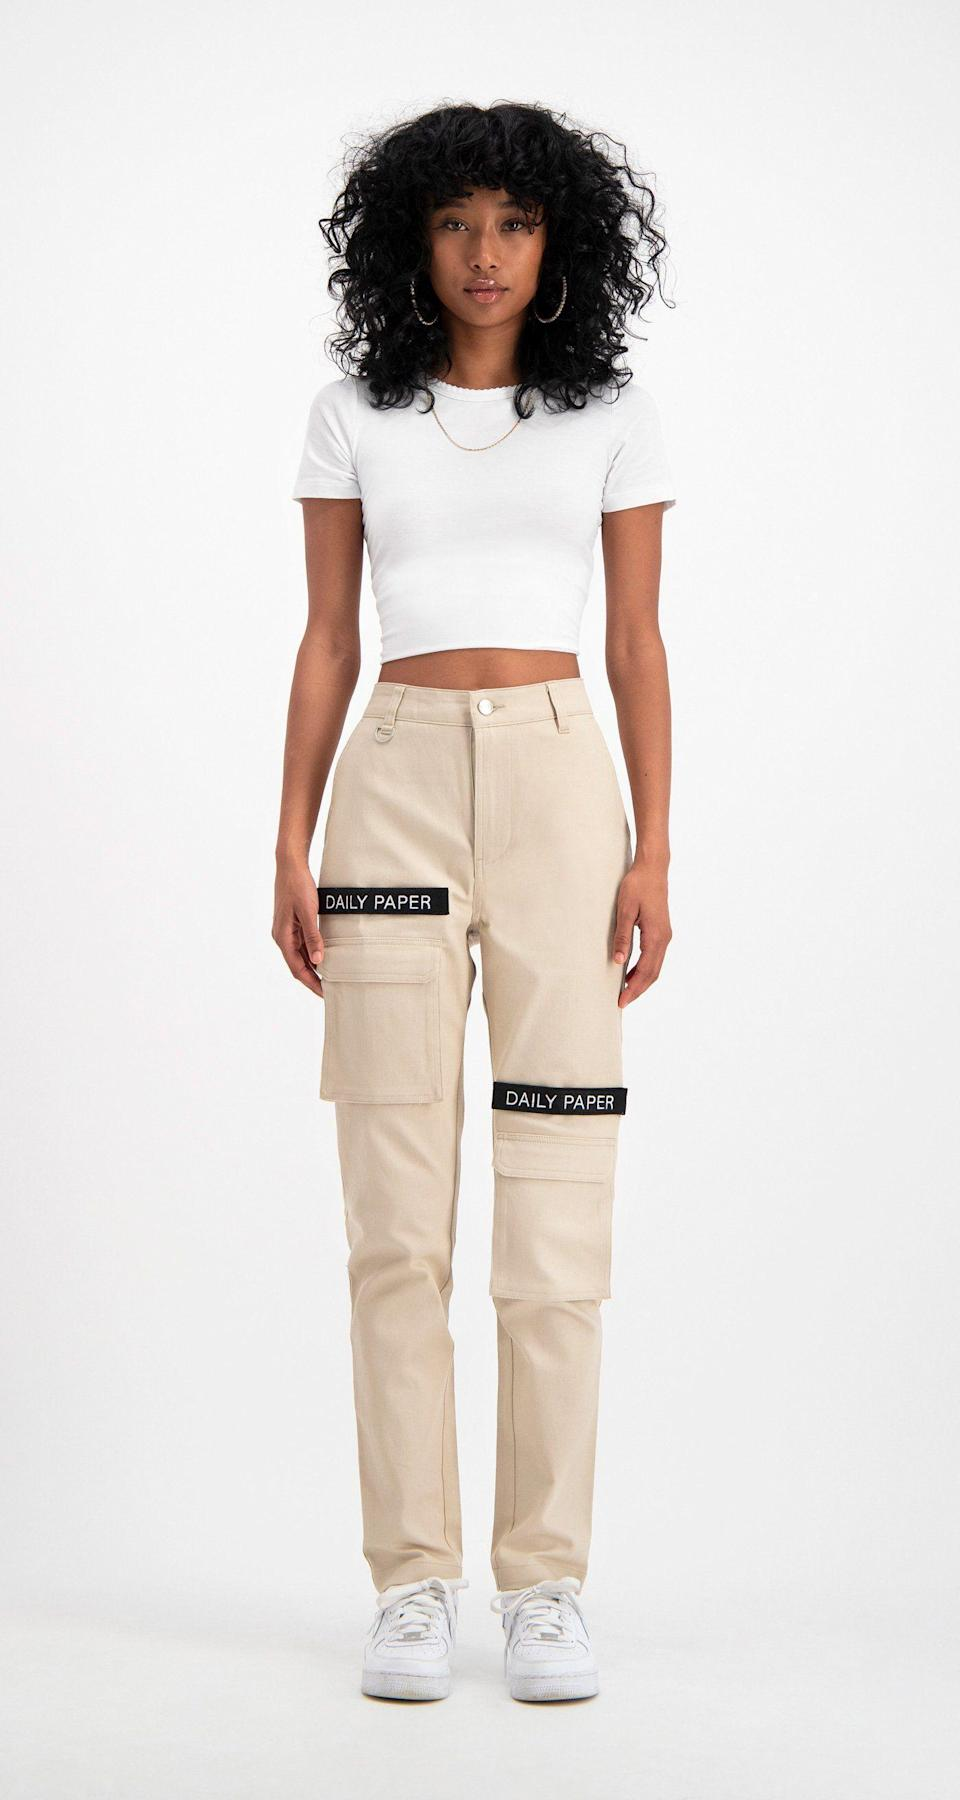 """<p><strong>Daily Paper</strong></p><p>dailypaperclothing.com</p><p><strong>120.00</strong></p><p><a href=""""https://www.dailypaperclothing.com/collections/women-all/products/cargo-pants-beige?variant=1016608948245"""" rel=""""nofollow noopener"""" target=""""_blank"""" data-ylk=""""slk:Shop Now"""" class=""""link rapid-noclick-resp"""">Shop Now</a></p><p>Not ready to make the switch from shorts to jeans just yet? I feel you. Try a pair of cargo pants and pair them with a simple cropped tee while it's still warm enough. </p>"""